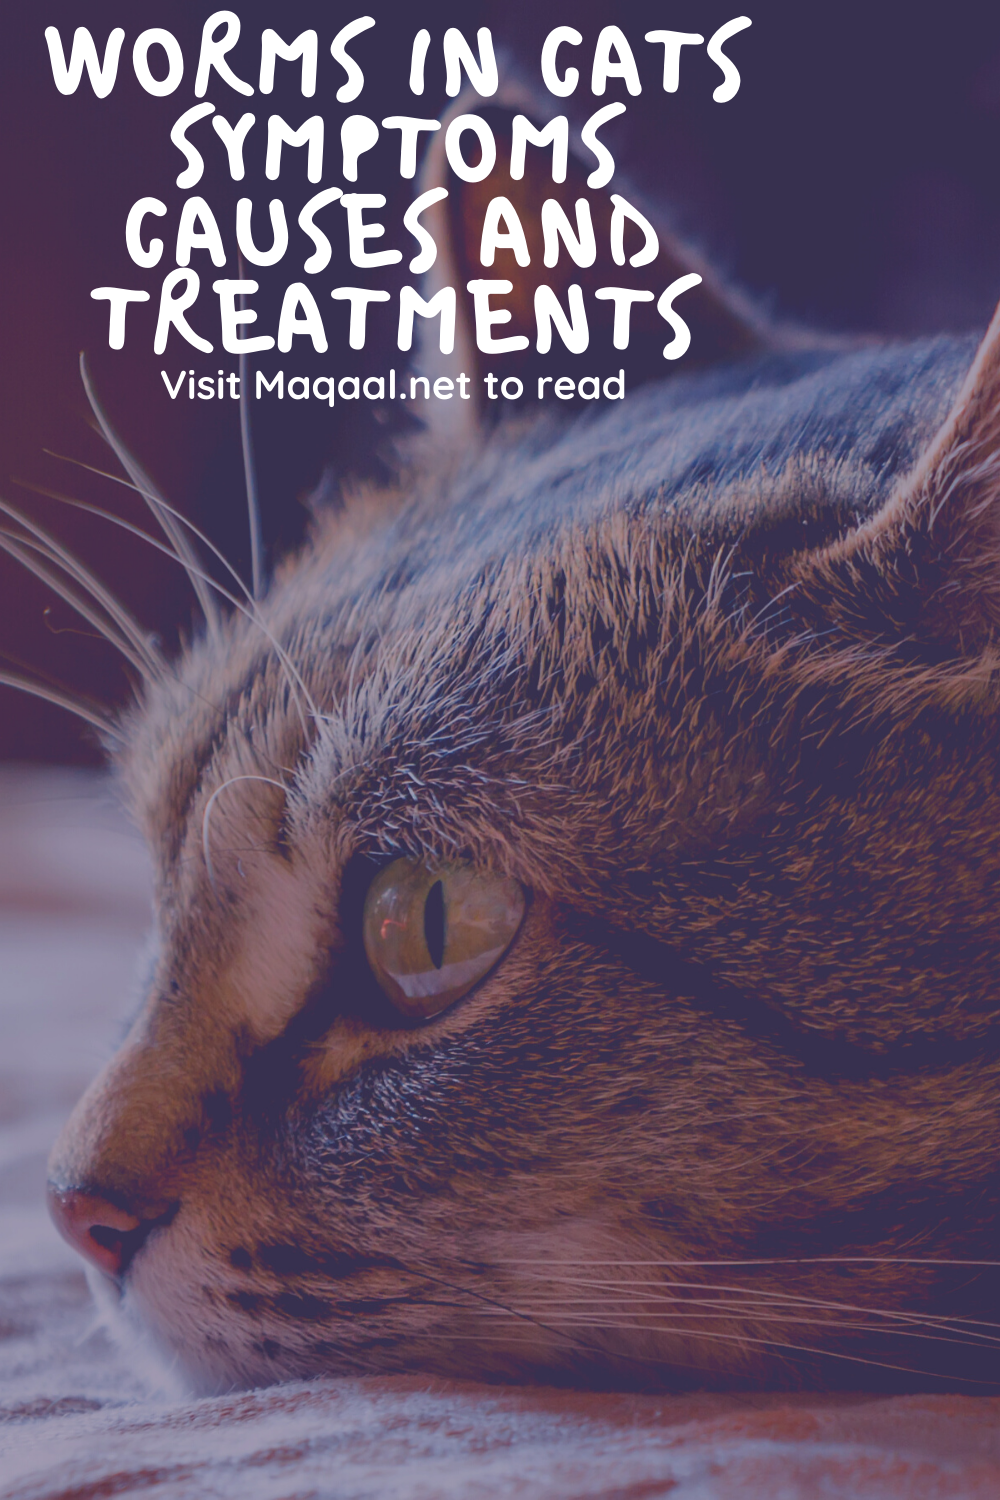 Worms In Cats Symptoms Causes And Treatments In 2020 Cats Cat Diseases Cat Medicine